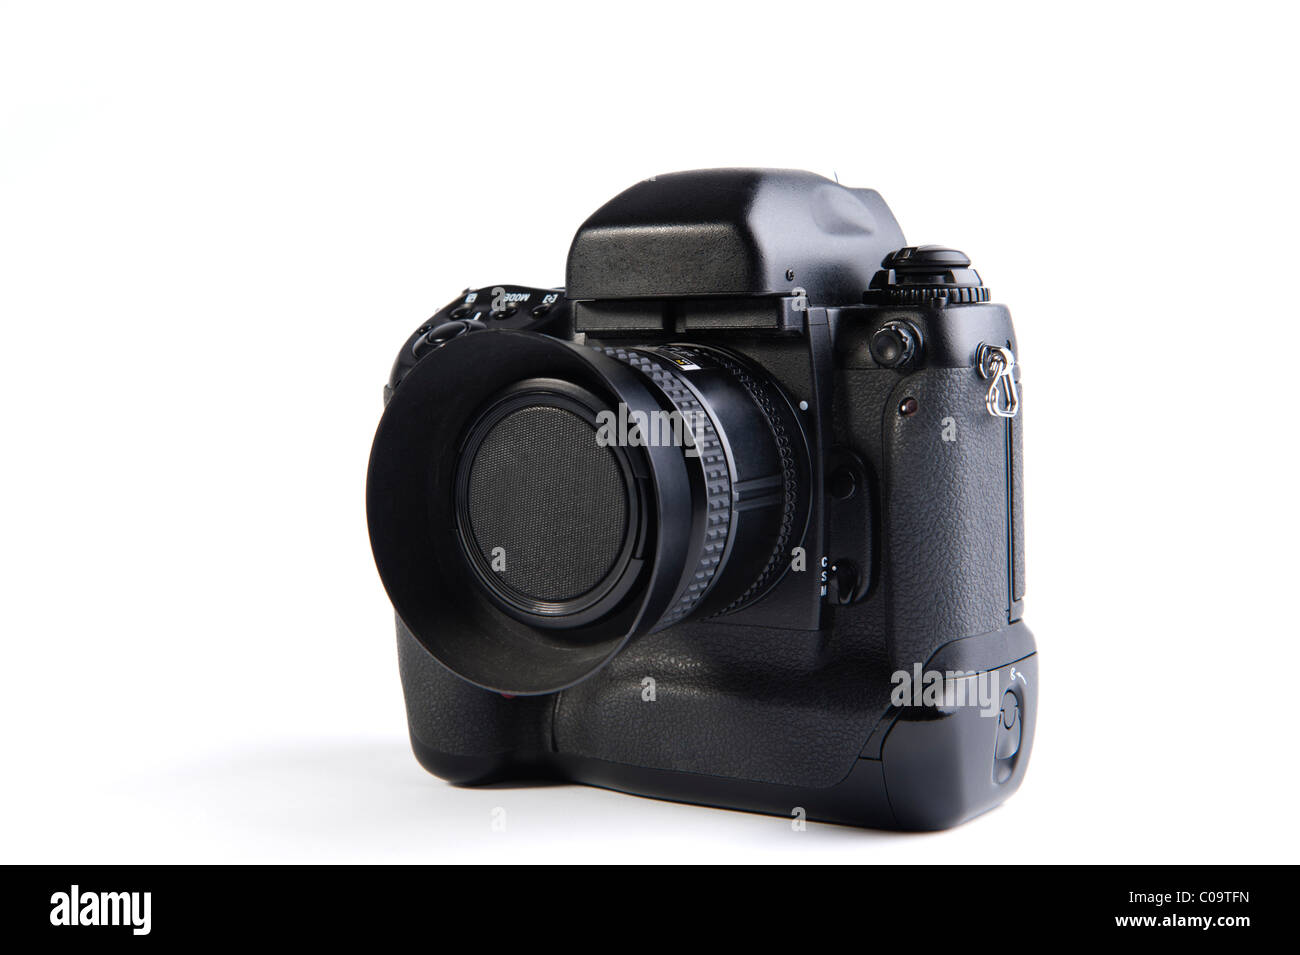 Professional Camera on white background without trademark or logo. - Stock Image